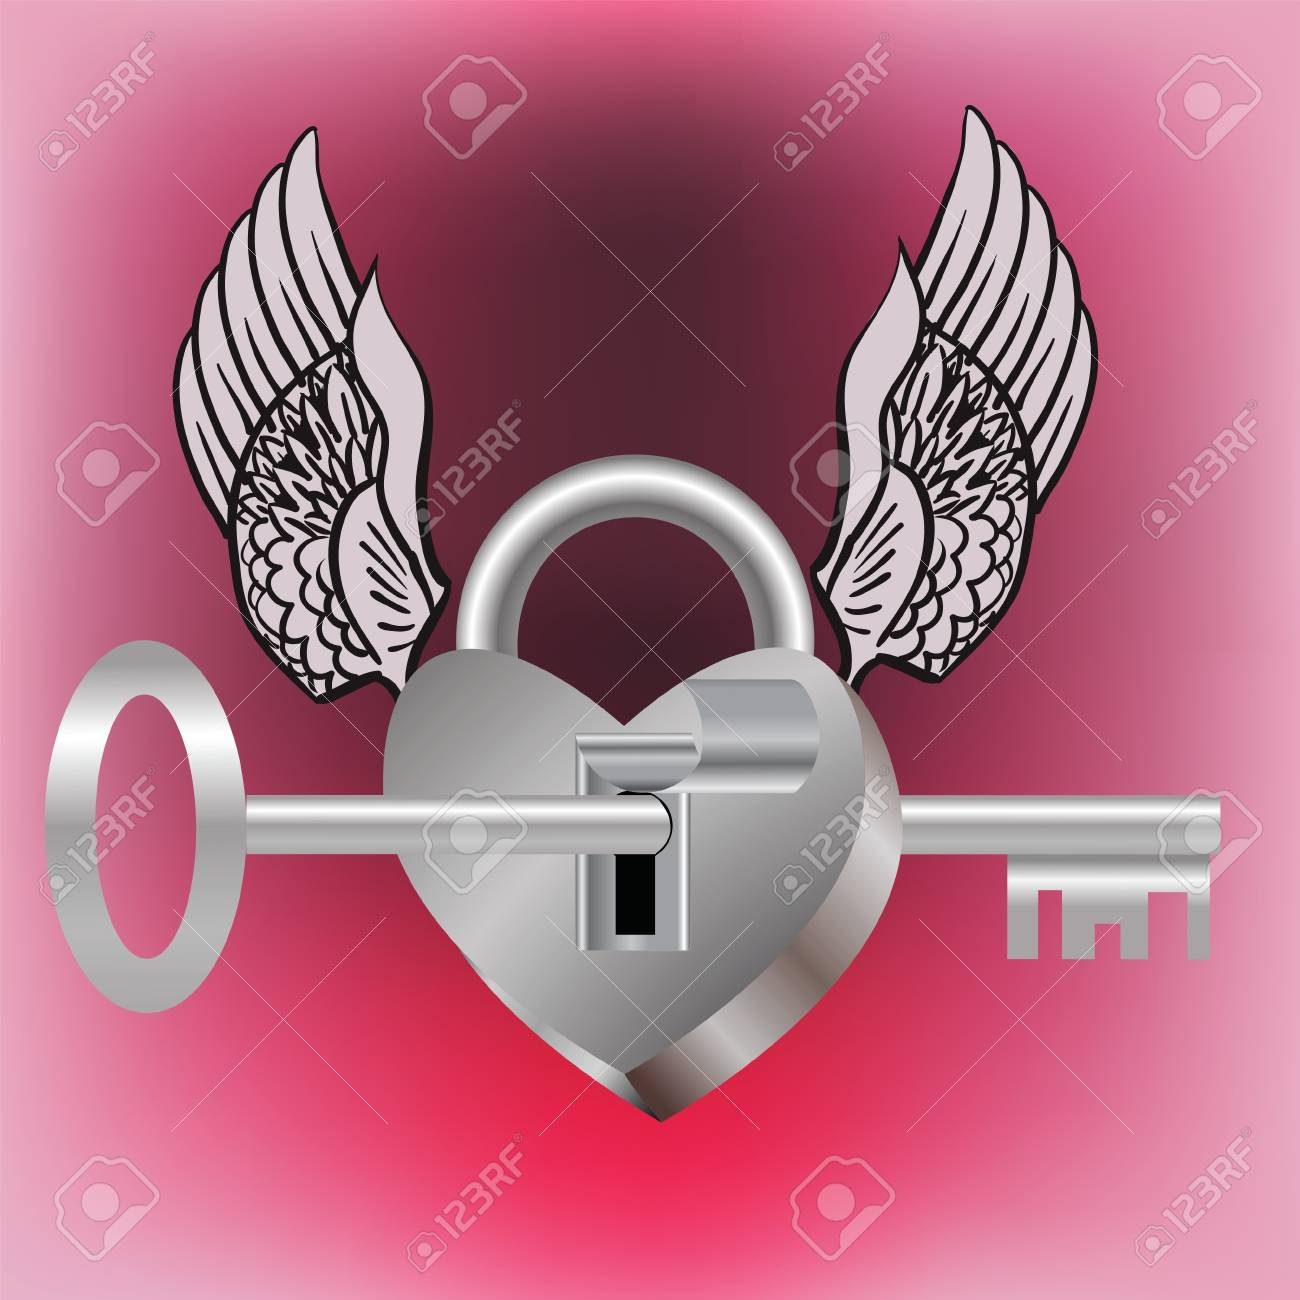 colorful illustration with lock and key for your design Stock Illustration - 18431160